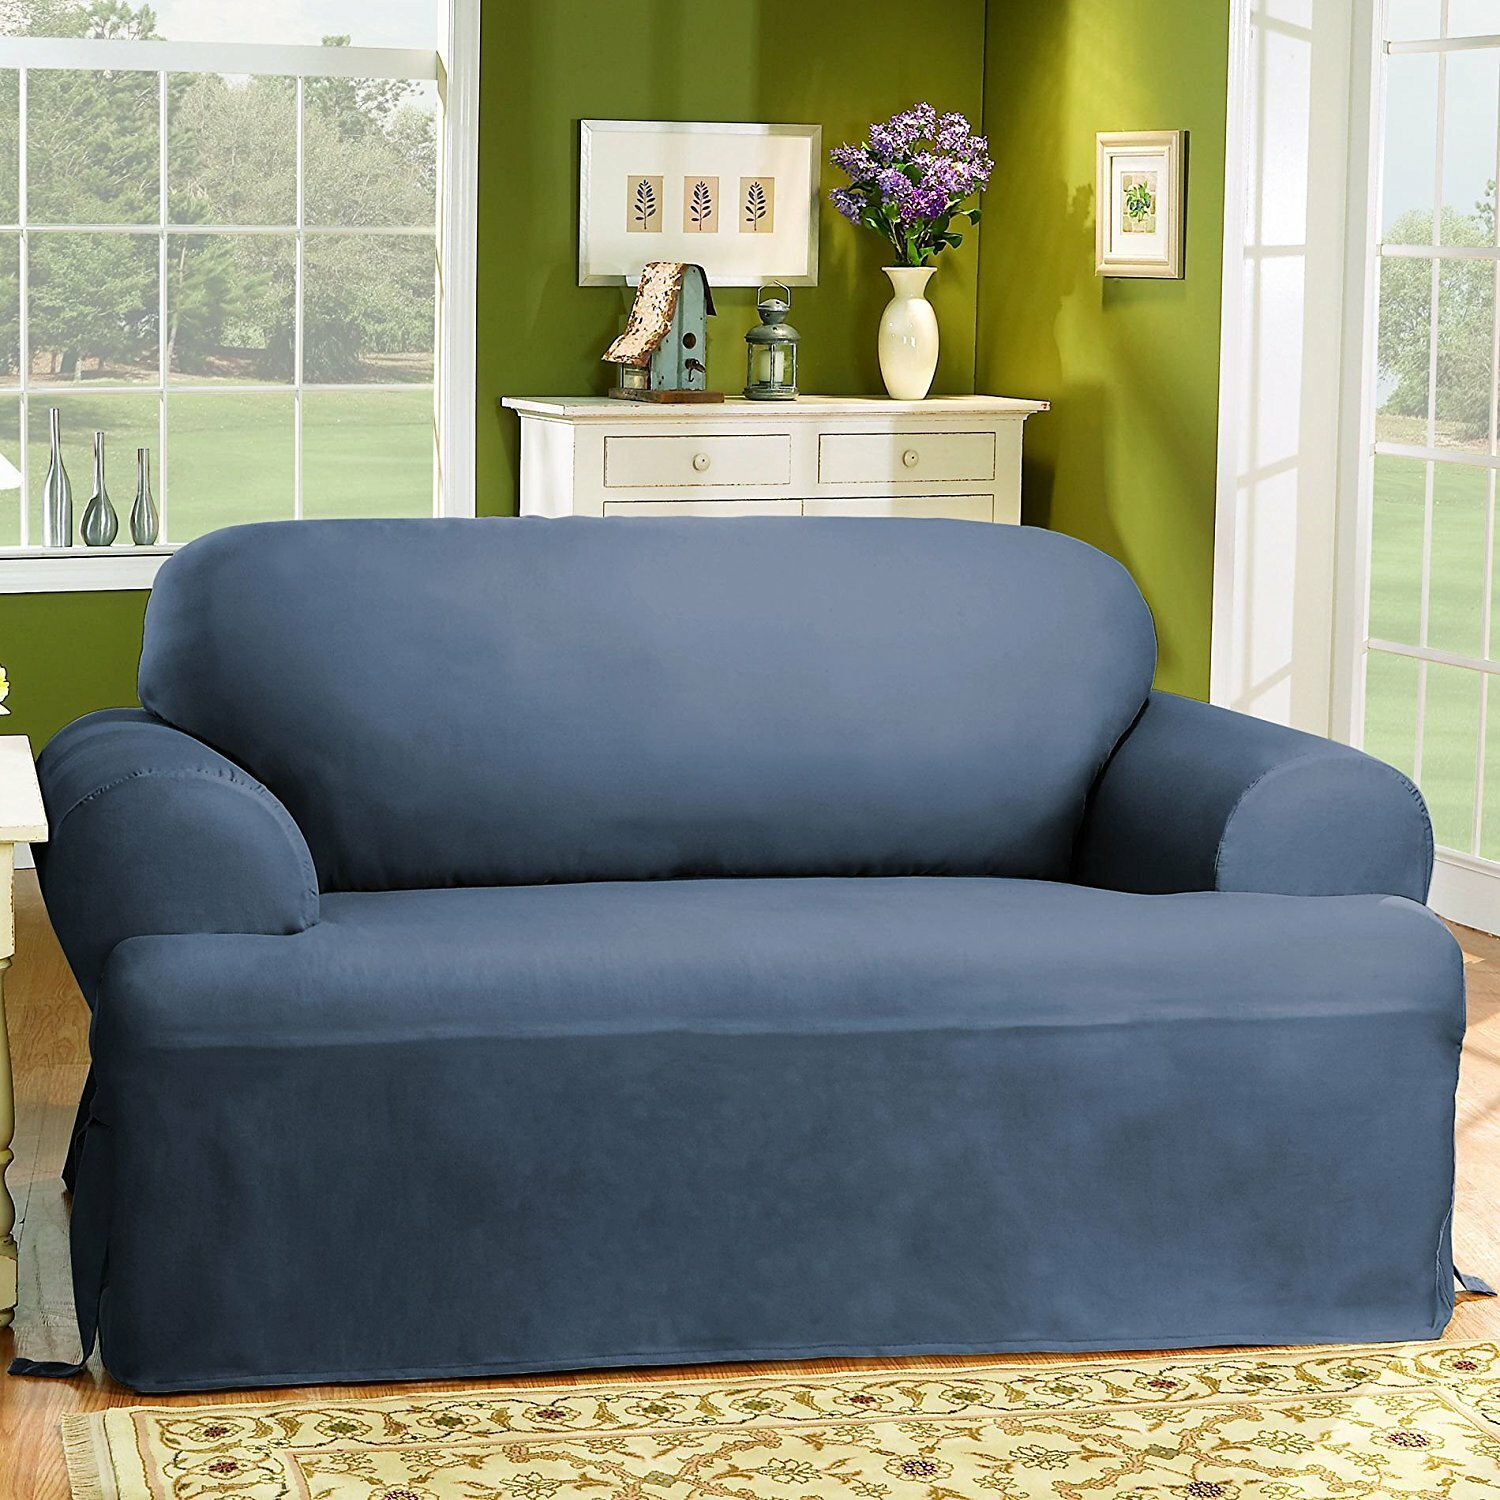 master fit cushion product surefitstretchpinstripetcushiontwopieceloveseatslipcover slipcover cfm two sure pinstripe hayneedle stretch piece t loveseat